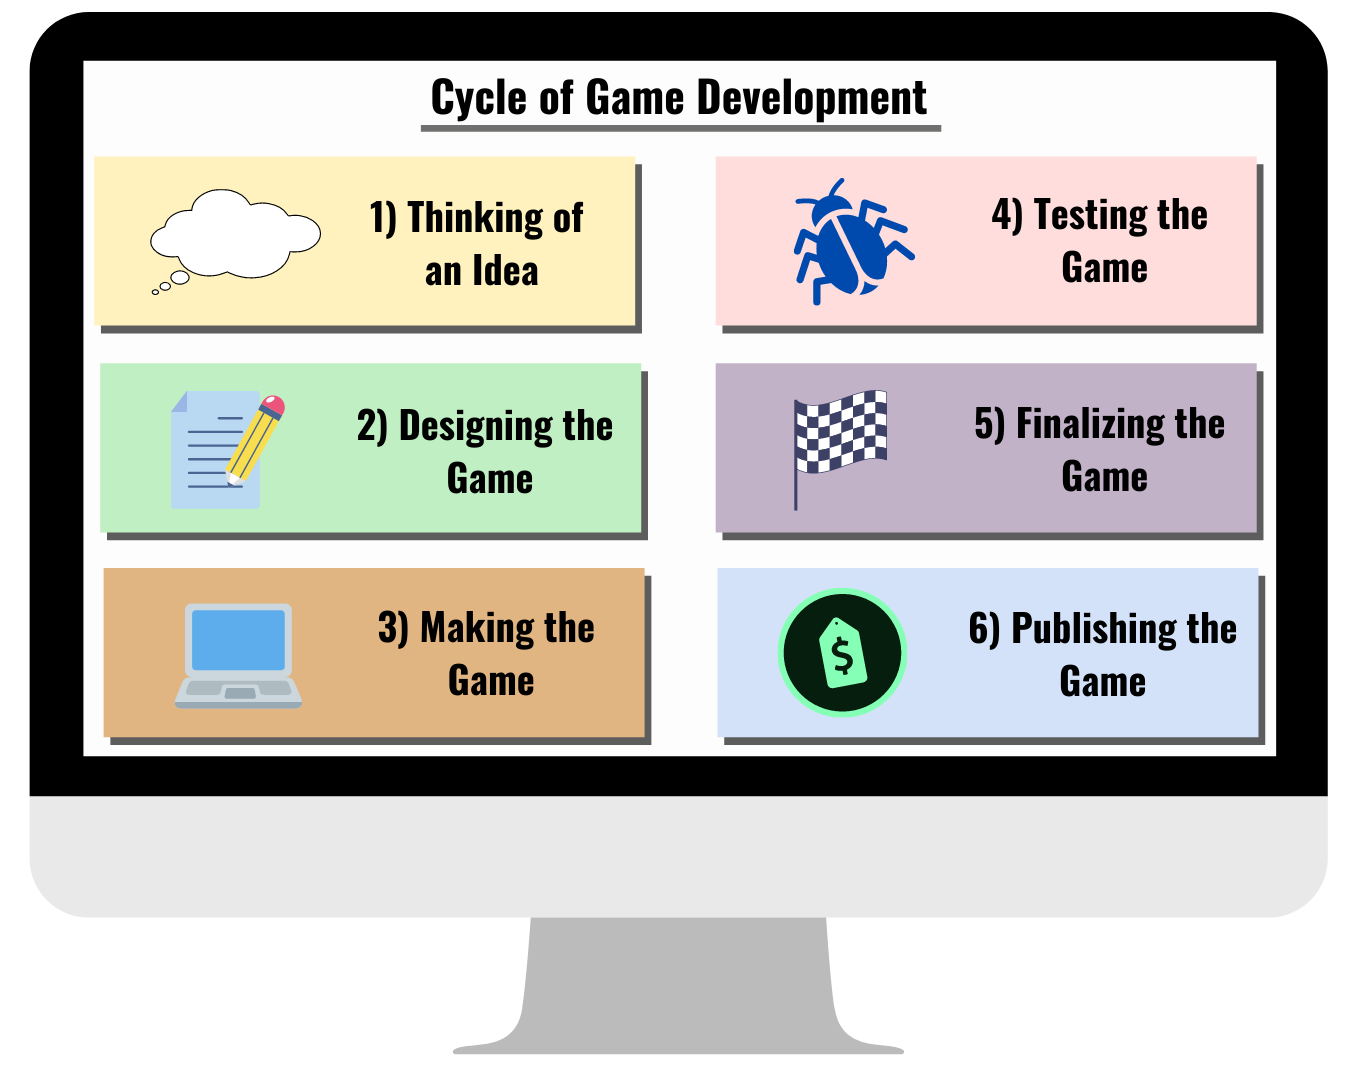 5 Steps in the Cycle of Game Development